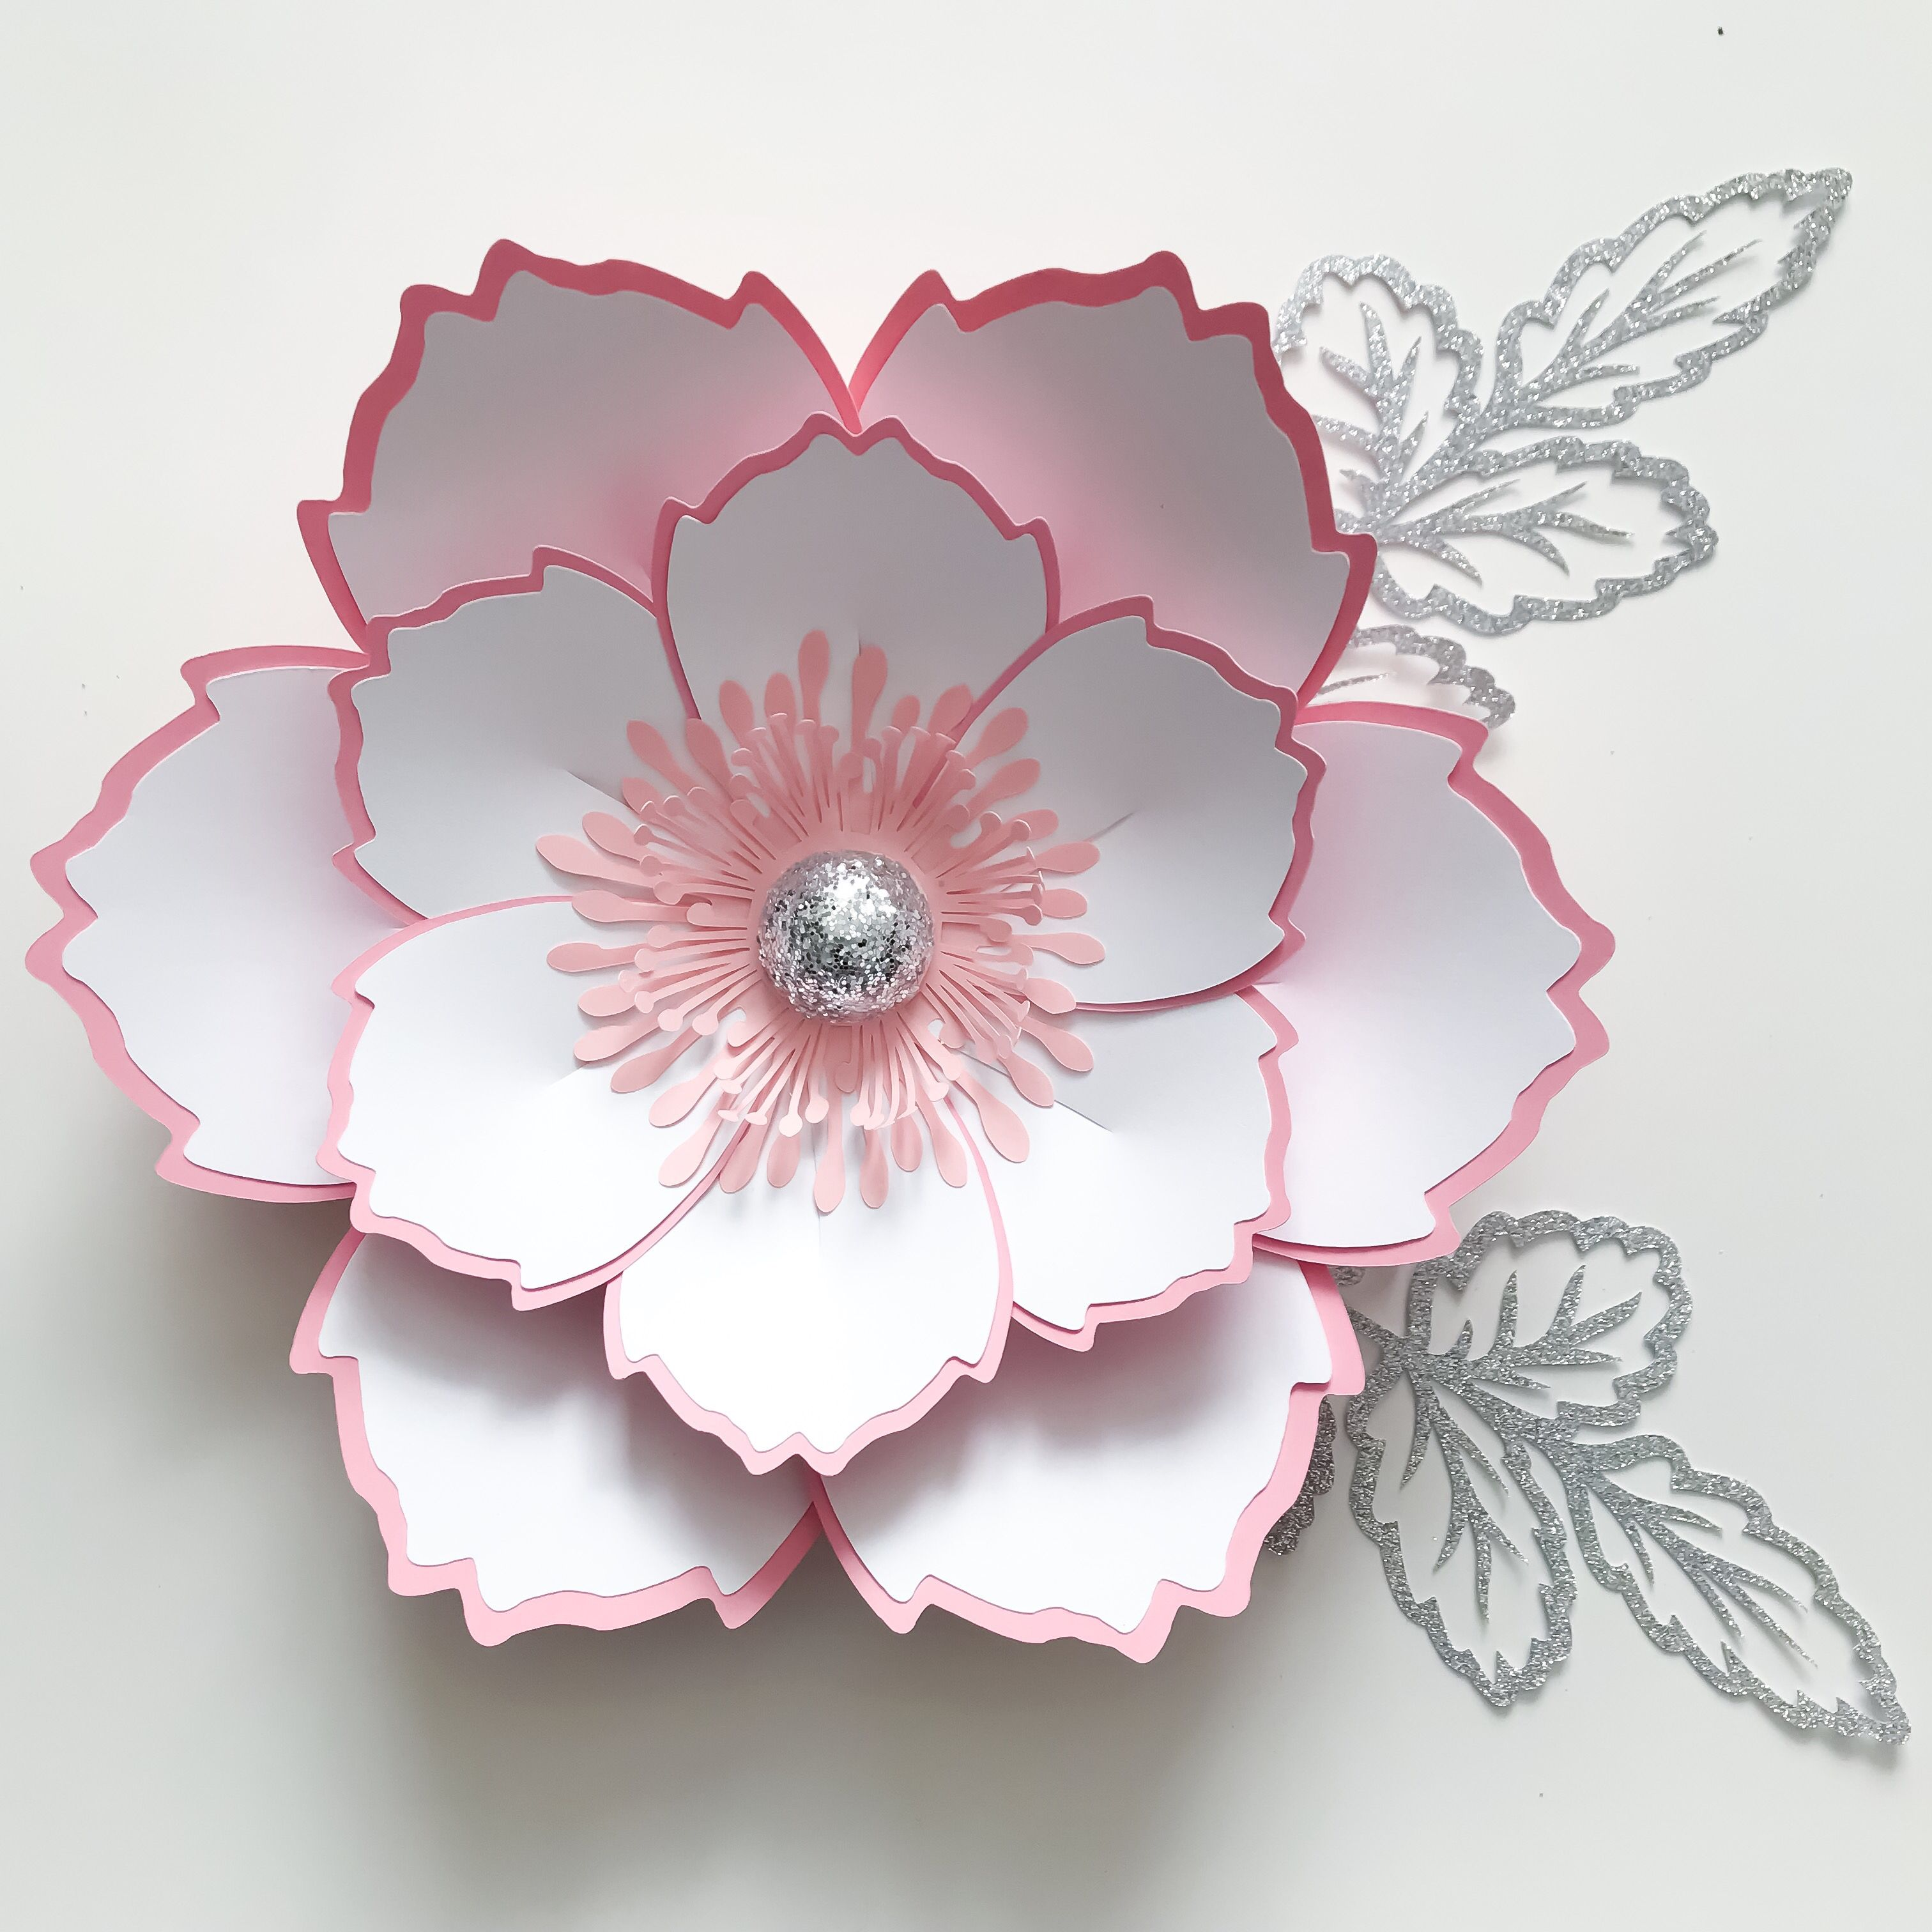 Heres A New Paper Flower Template From The Crafty Sagittarius